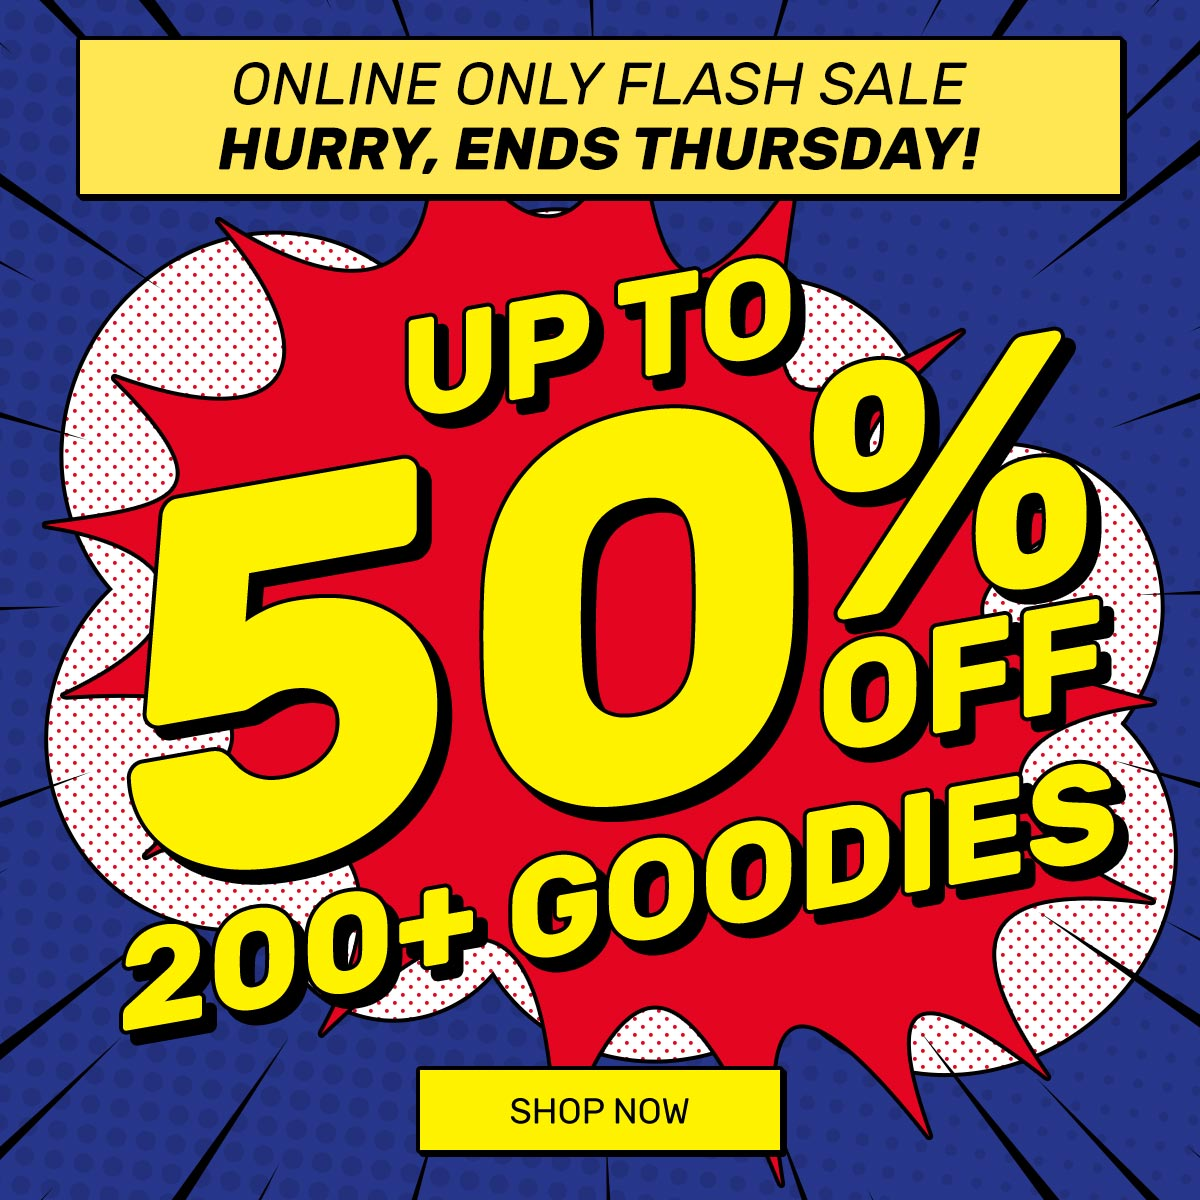 Flash Sale Up to 50% OFF 120+ Goodies*